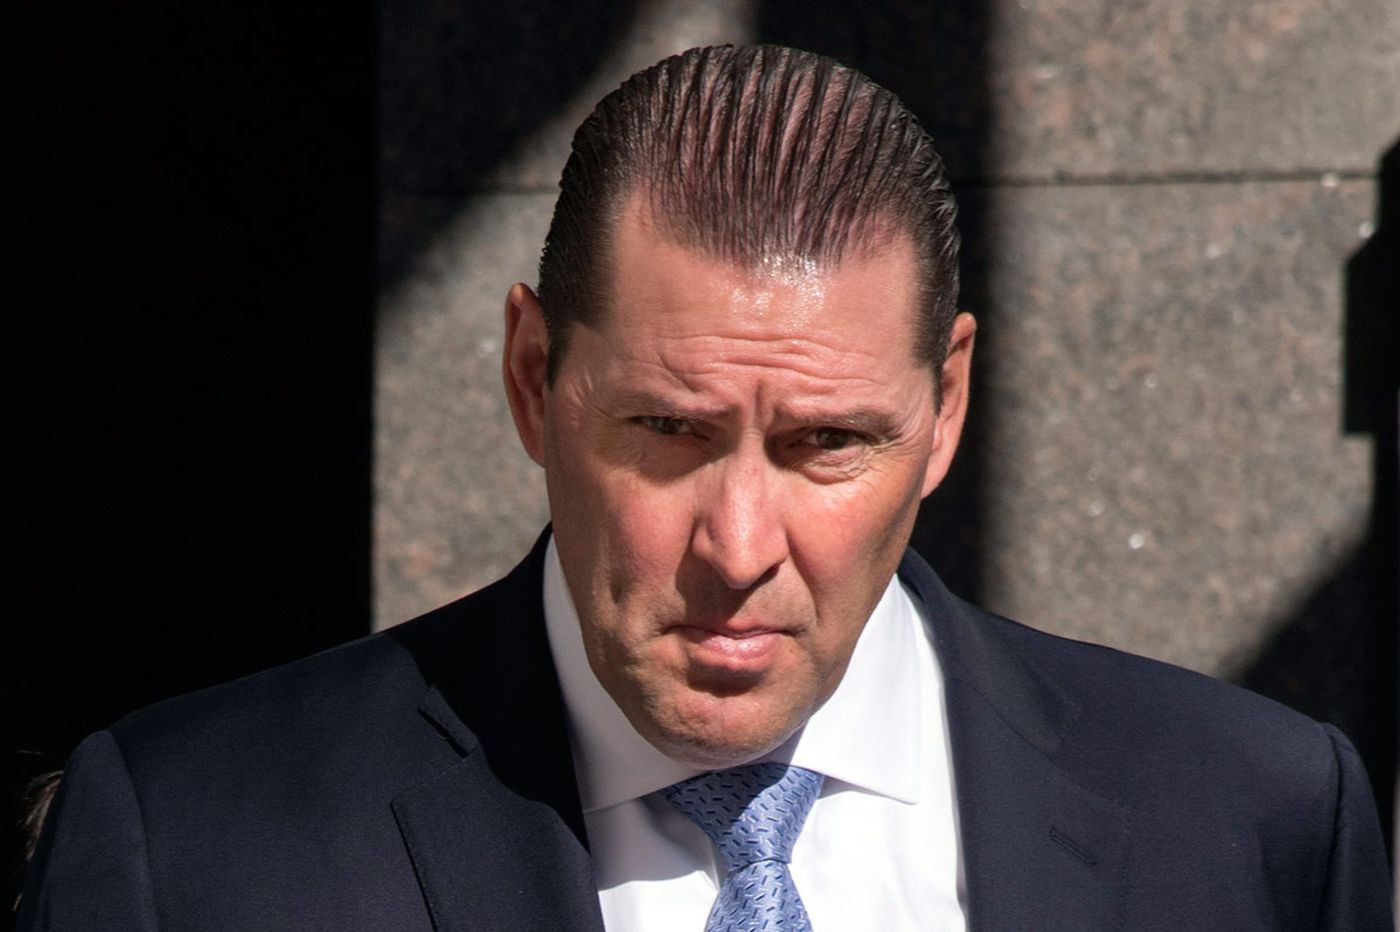 Barry Bekkedam, former Main Line investment manager, ordered to prison Monday